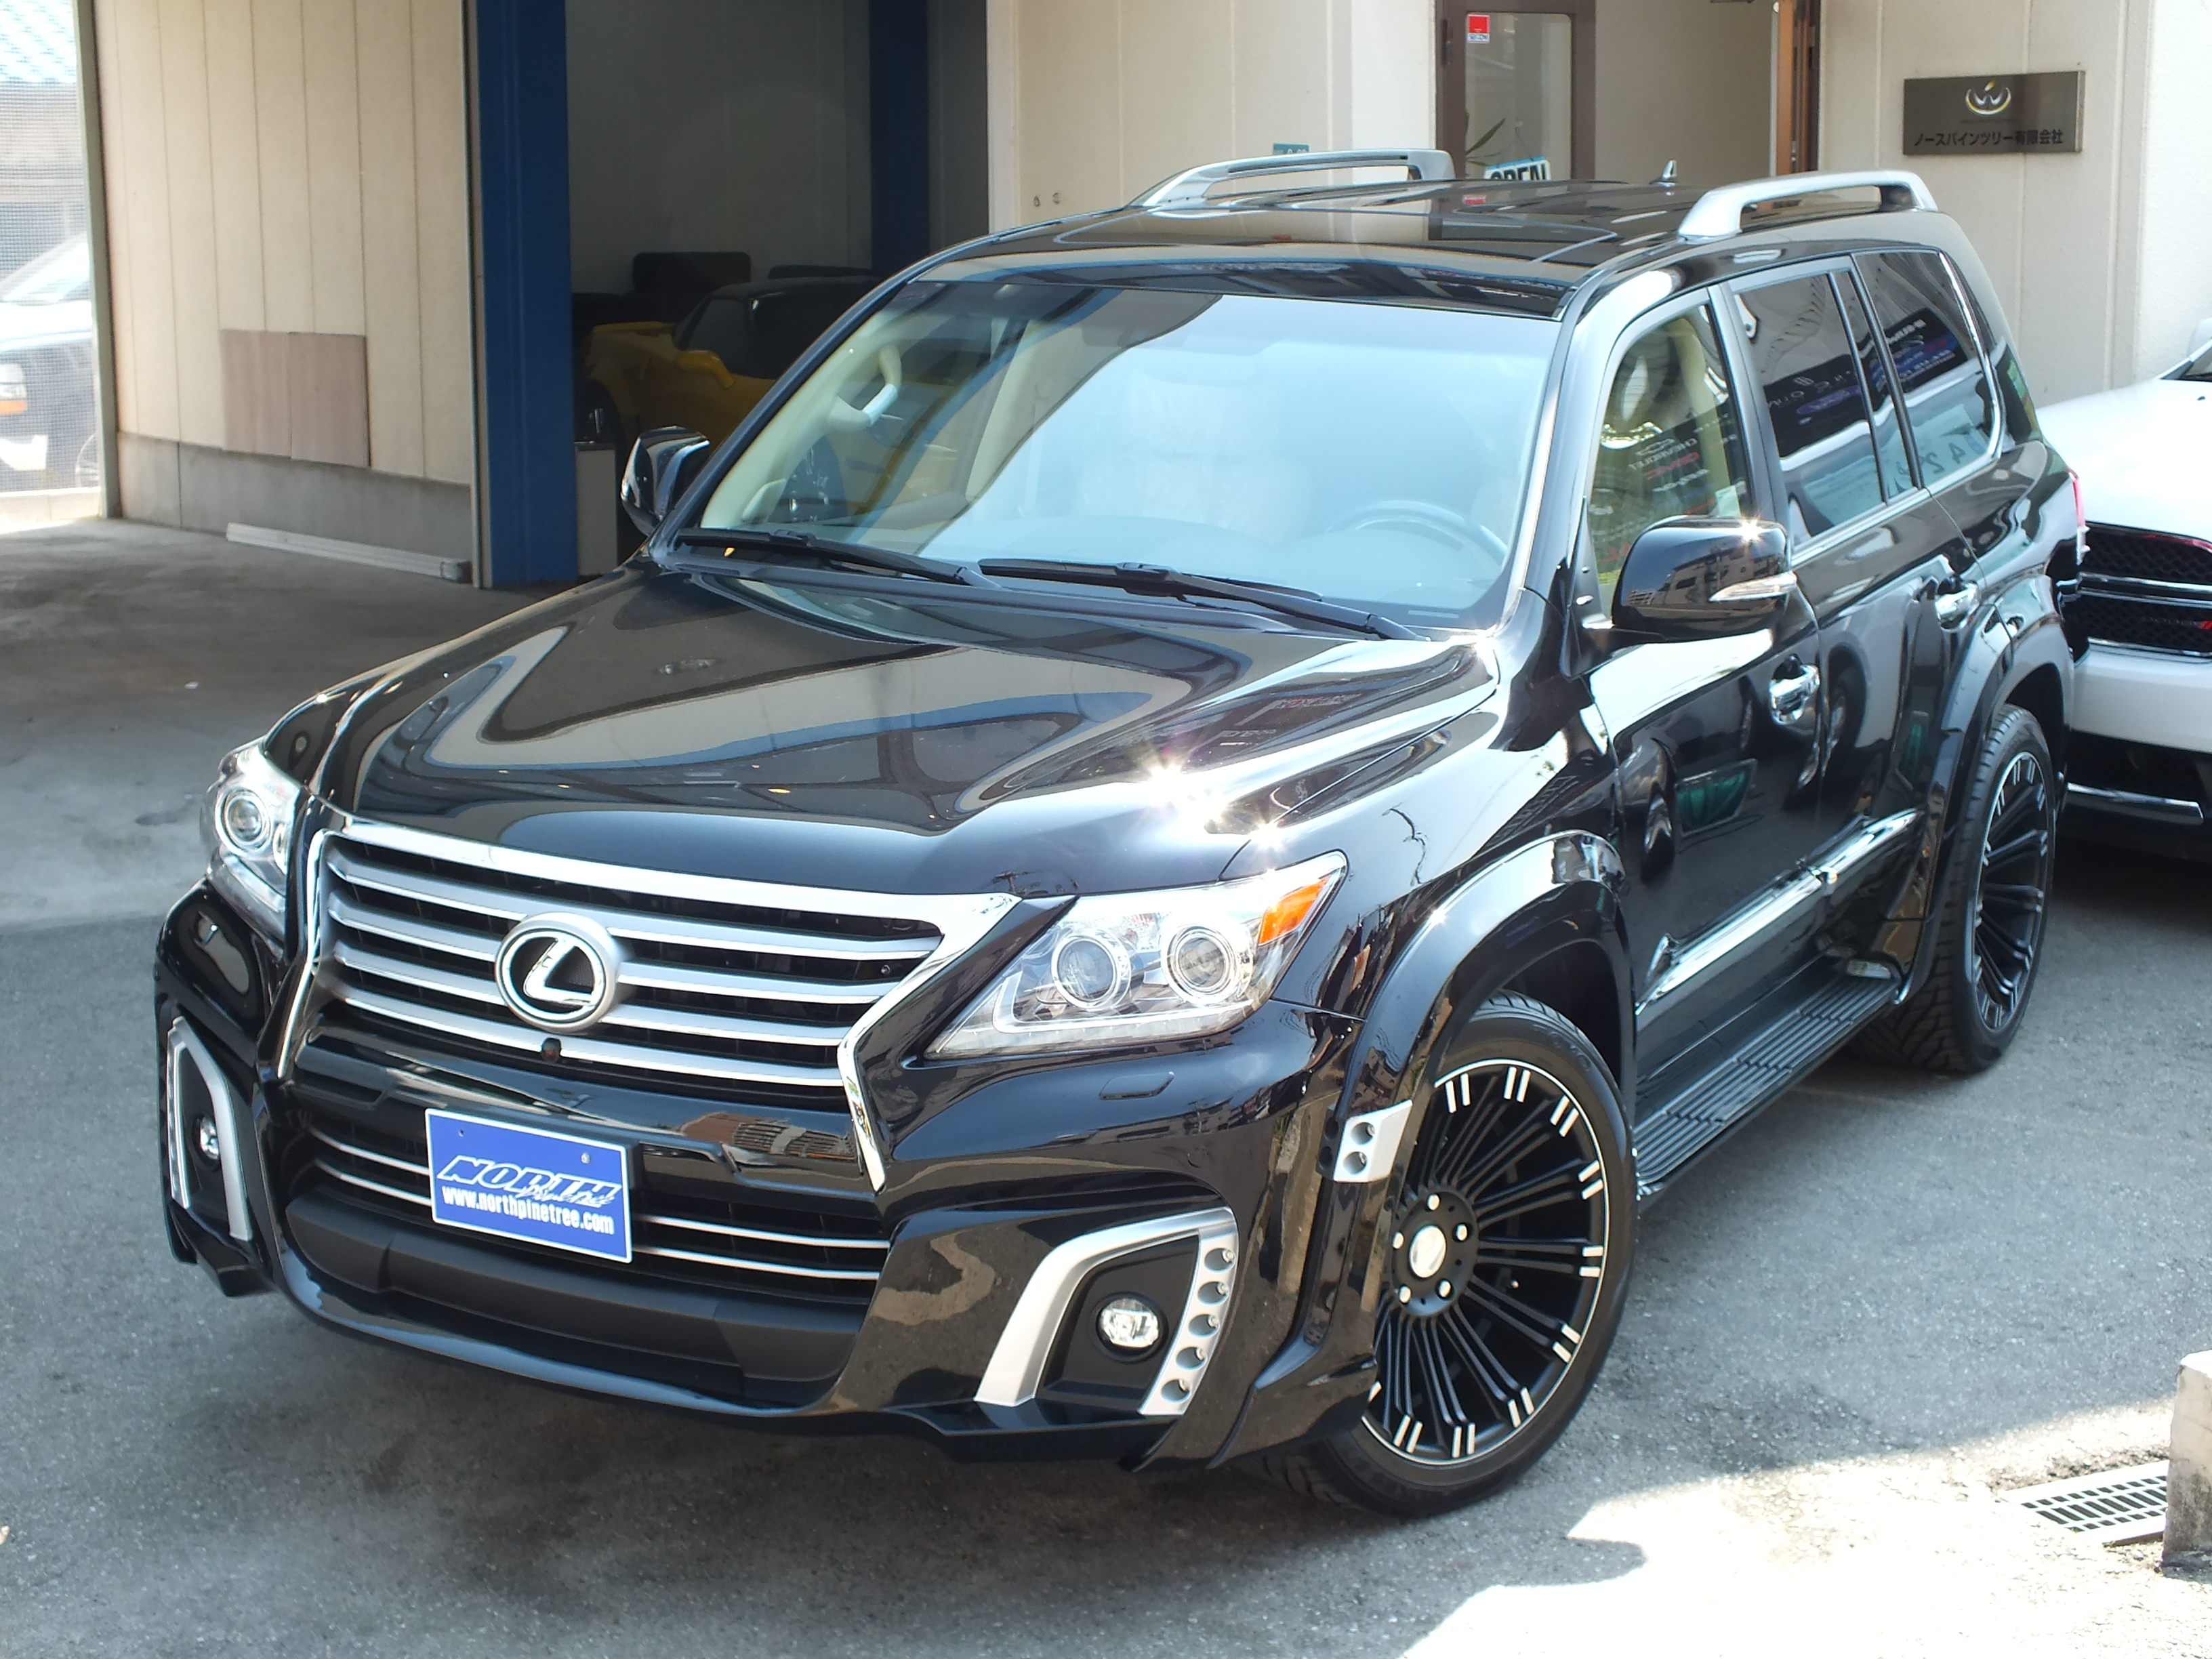 lexus lx570 vs qx56 2017. Black Bedroom Furniture Sets. Home Design Ideas